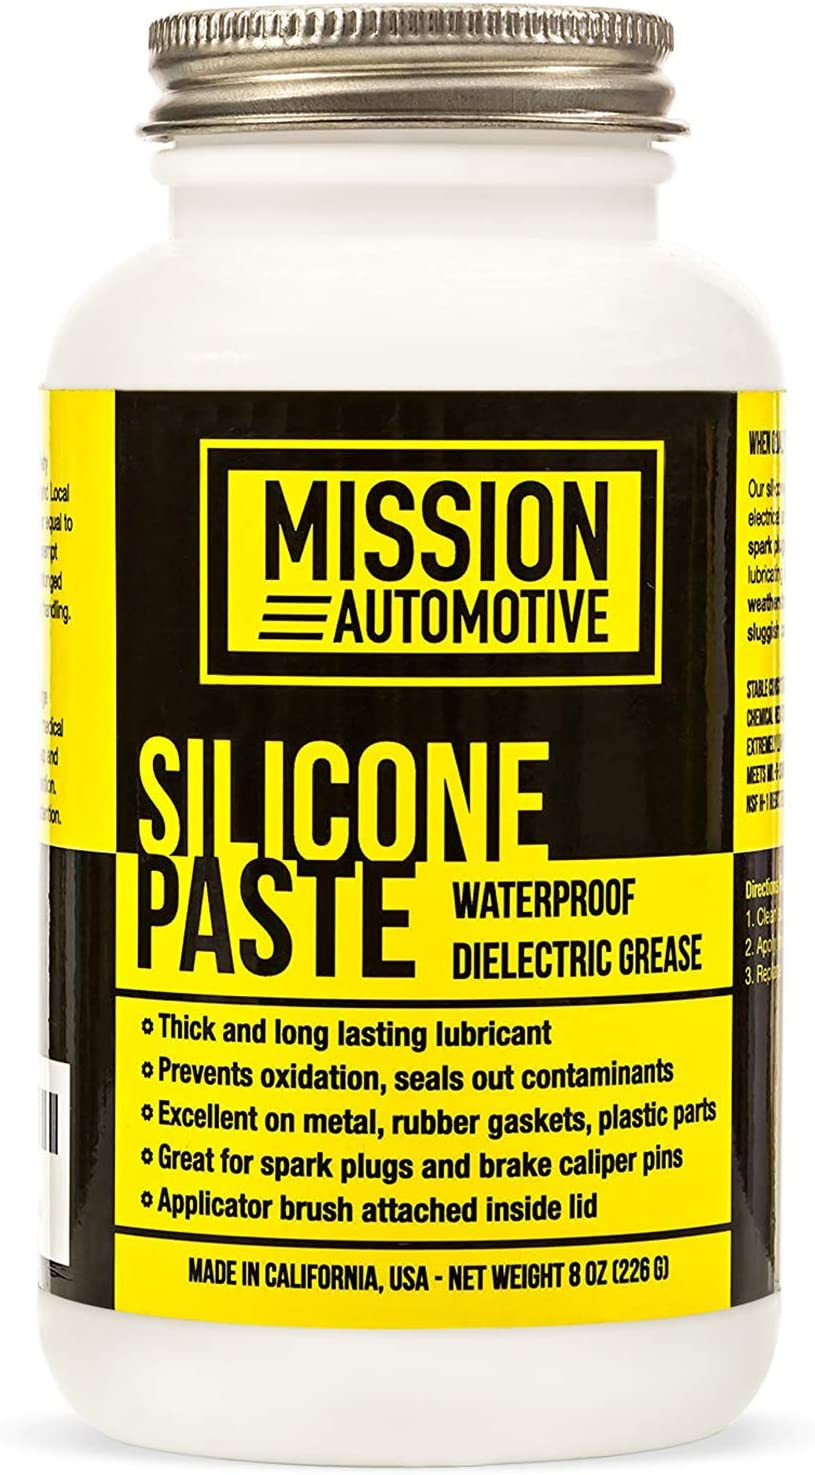 Mission Automotive Dielectric Grease/Silicone Paste/Waterproof Marine Grease}